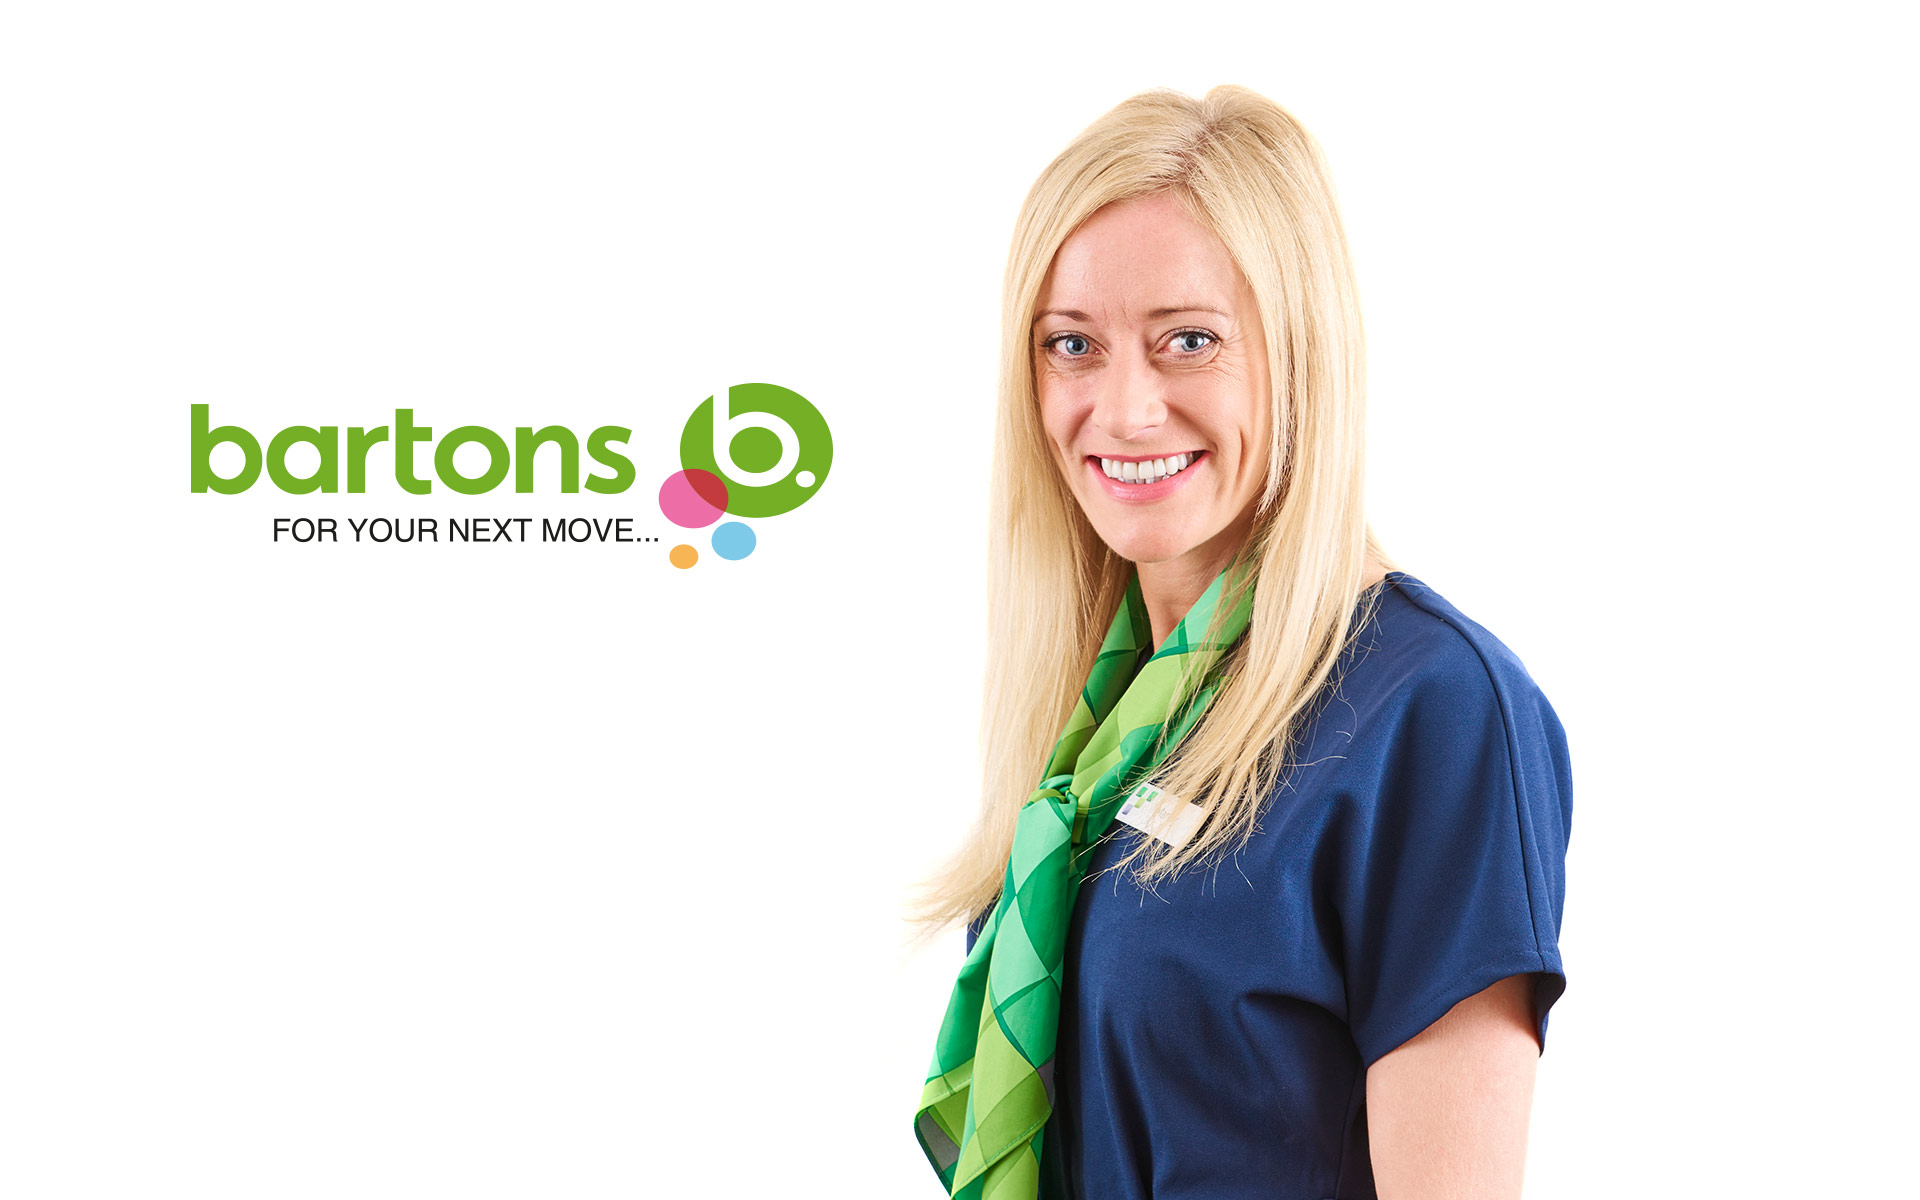 Bartons-IDEA-Rotherham-Photographer-Mandy